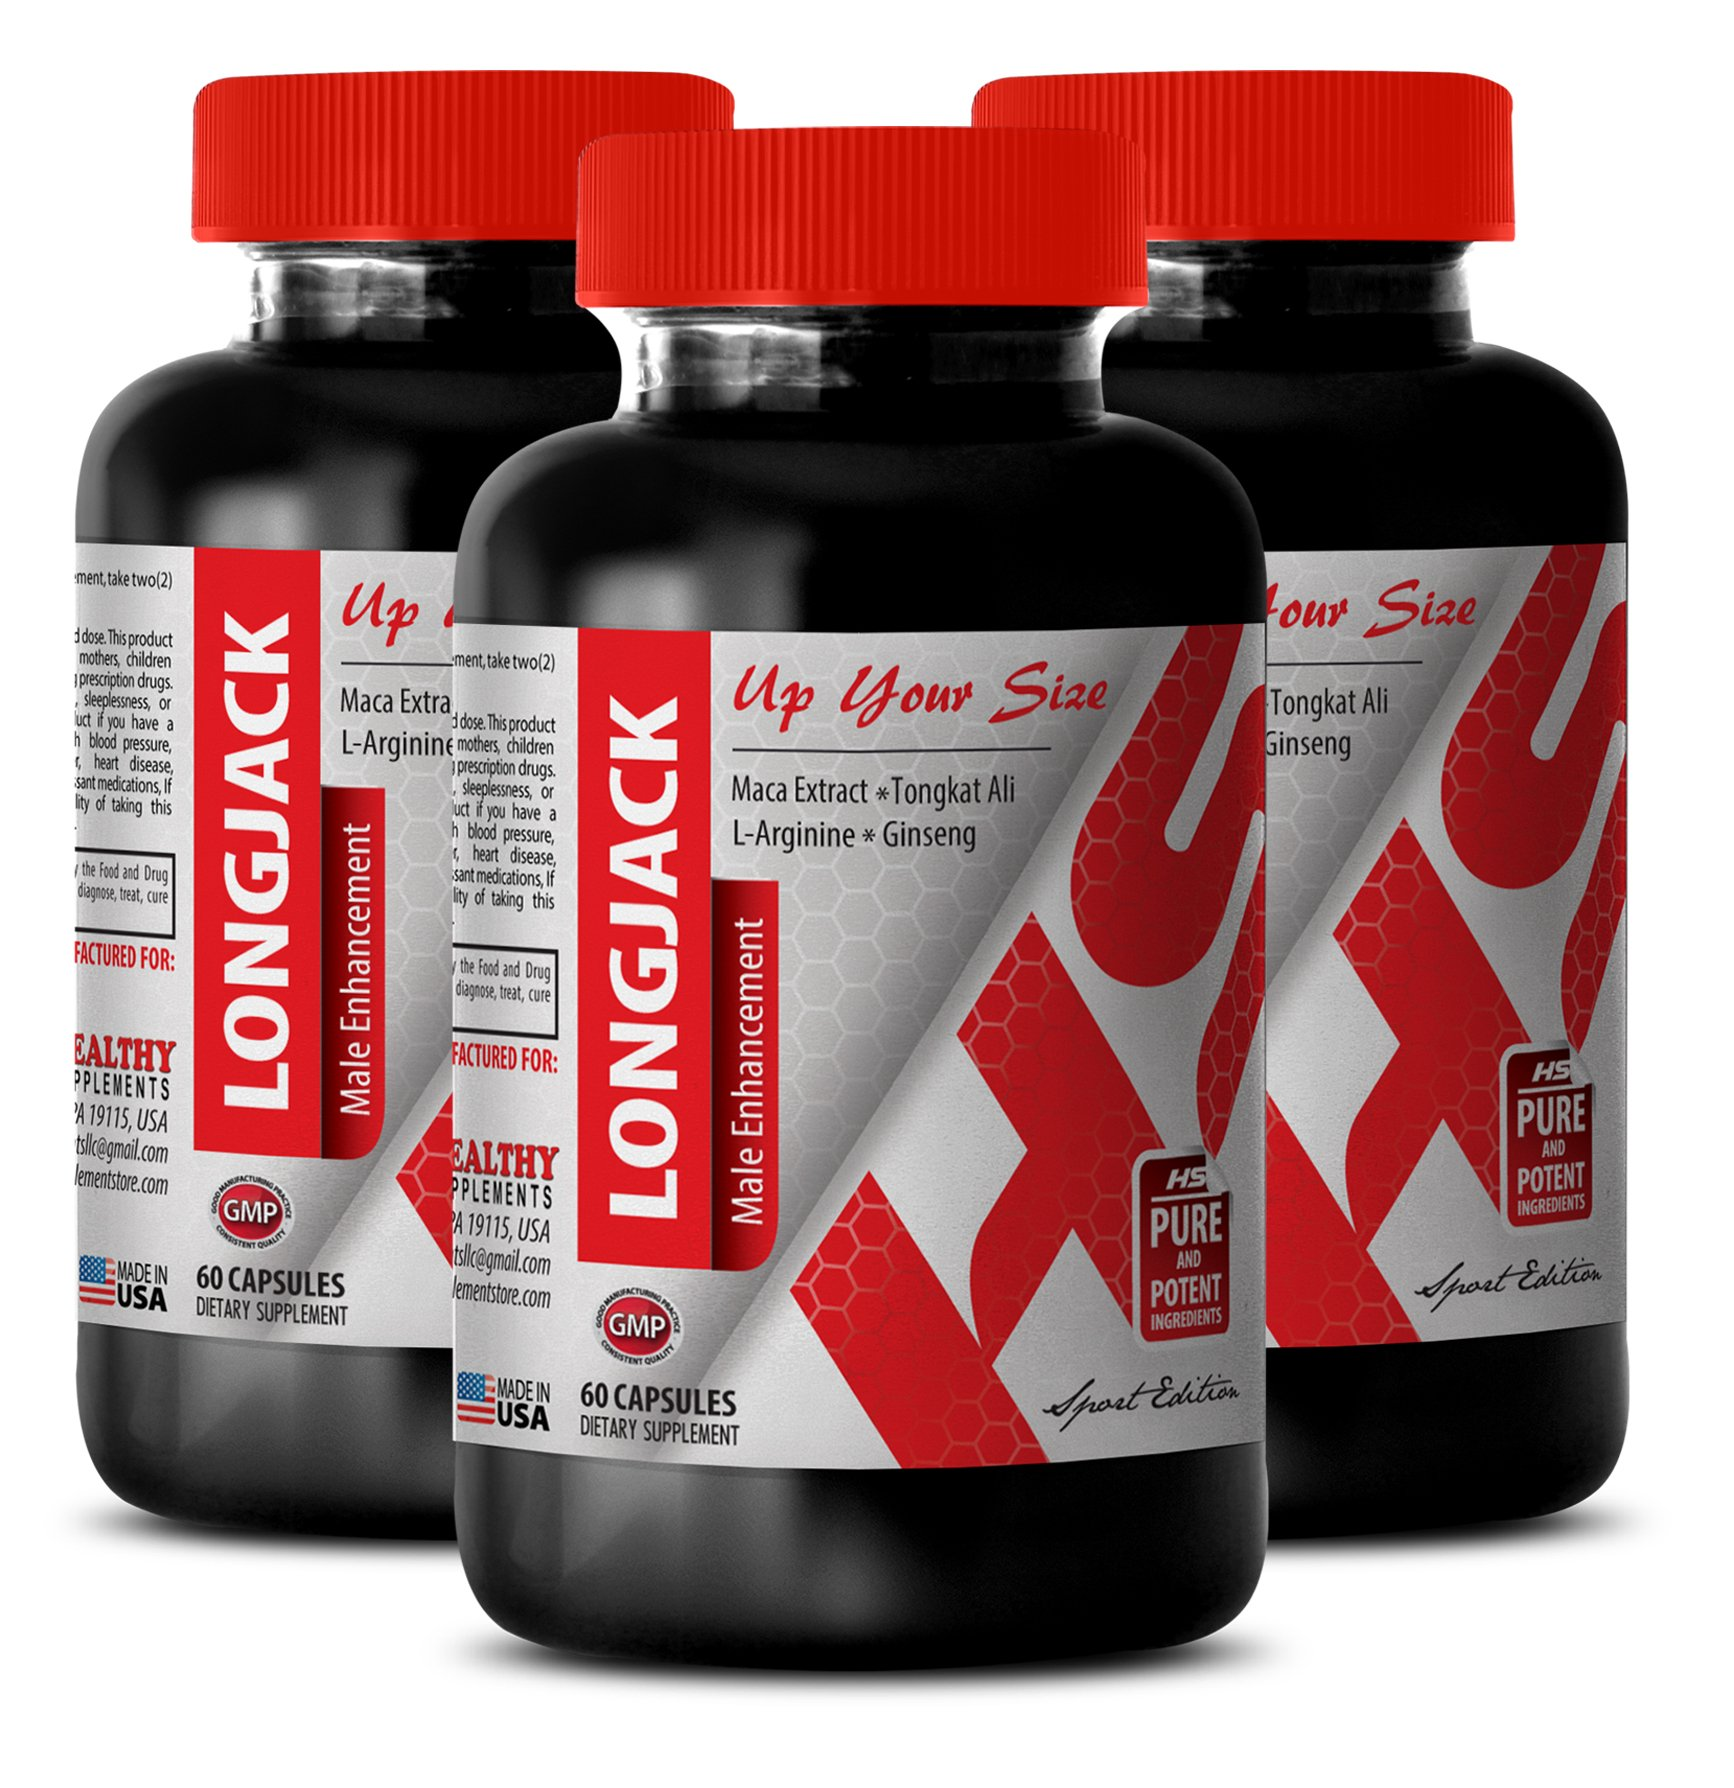 Pills for men bigger - LONGJACK - MALE ENHANCEMENT - UP YOUR SIZE - Tongkat ali male supplement - 3 Bottles 180 Capsules